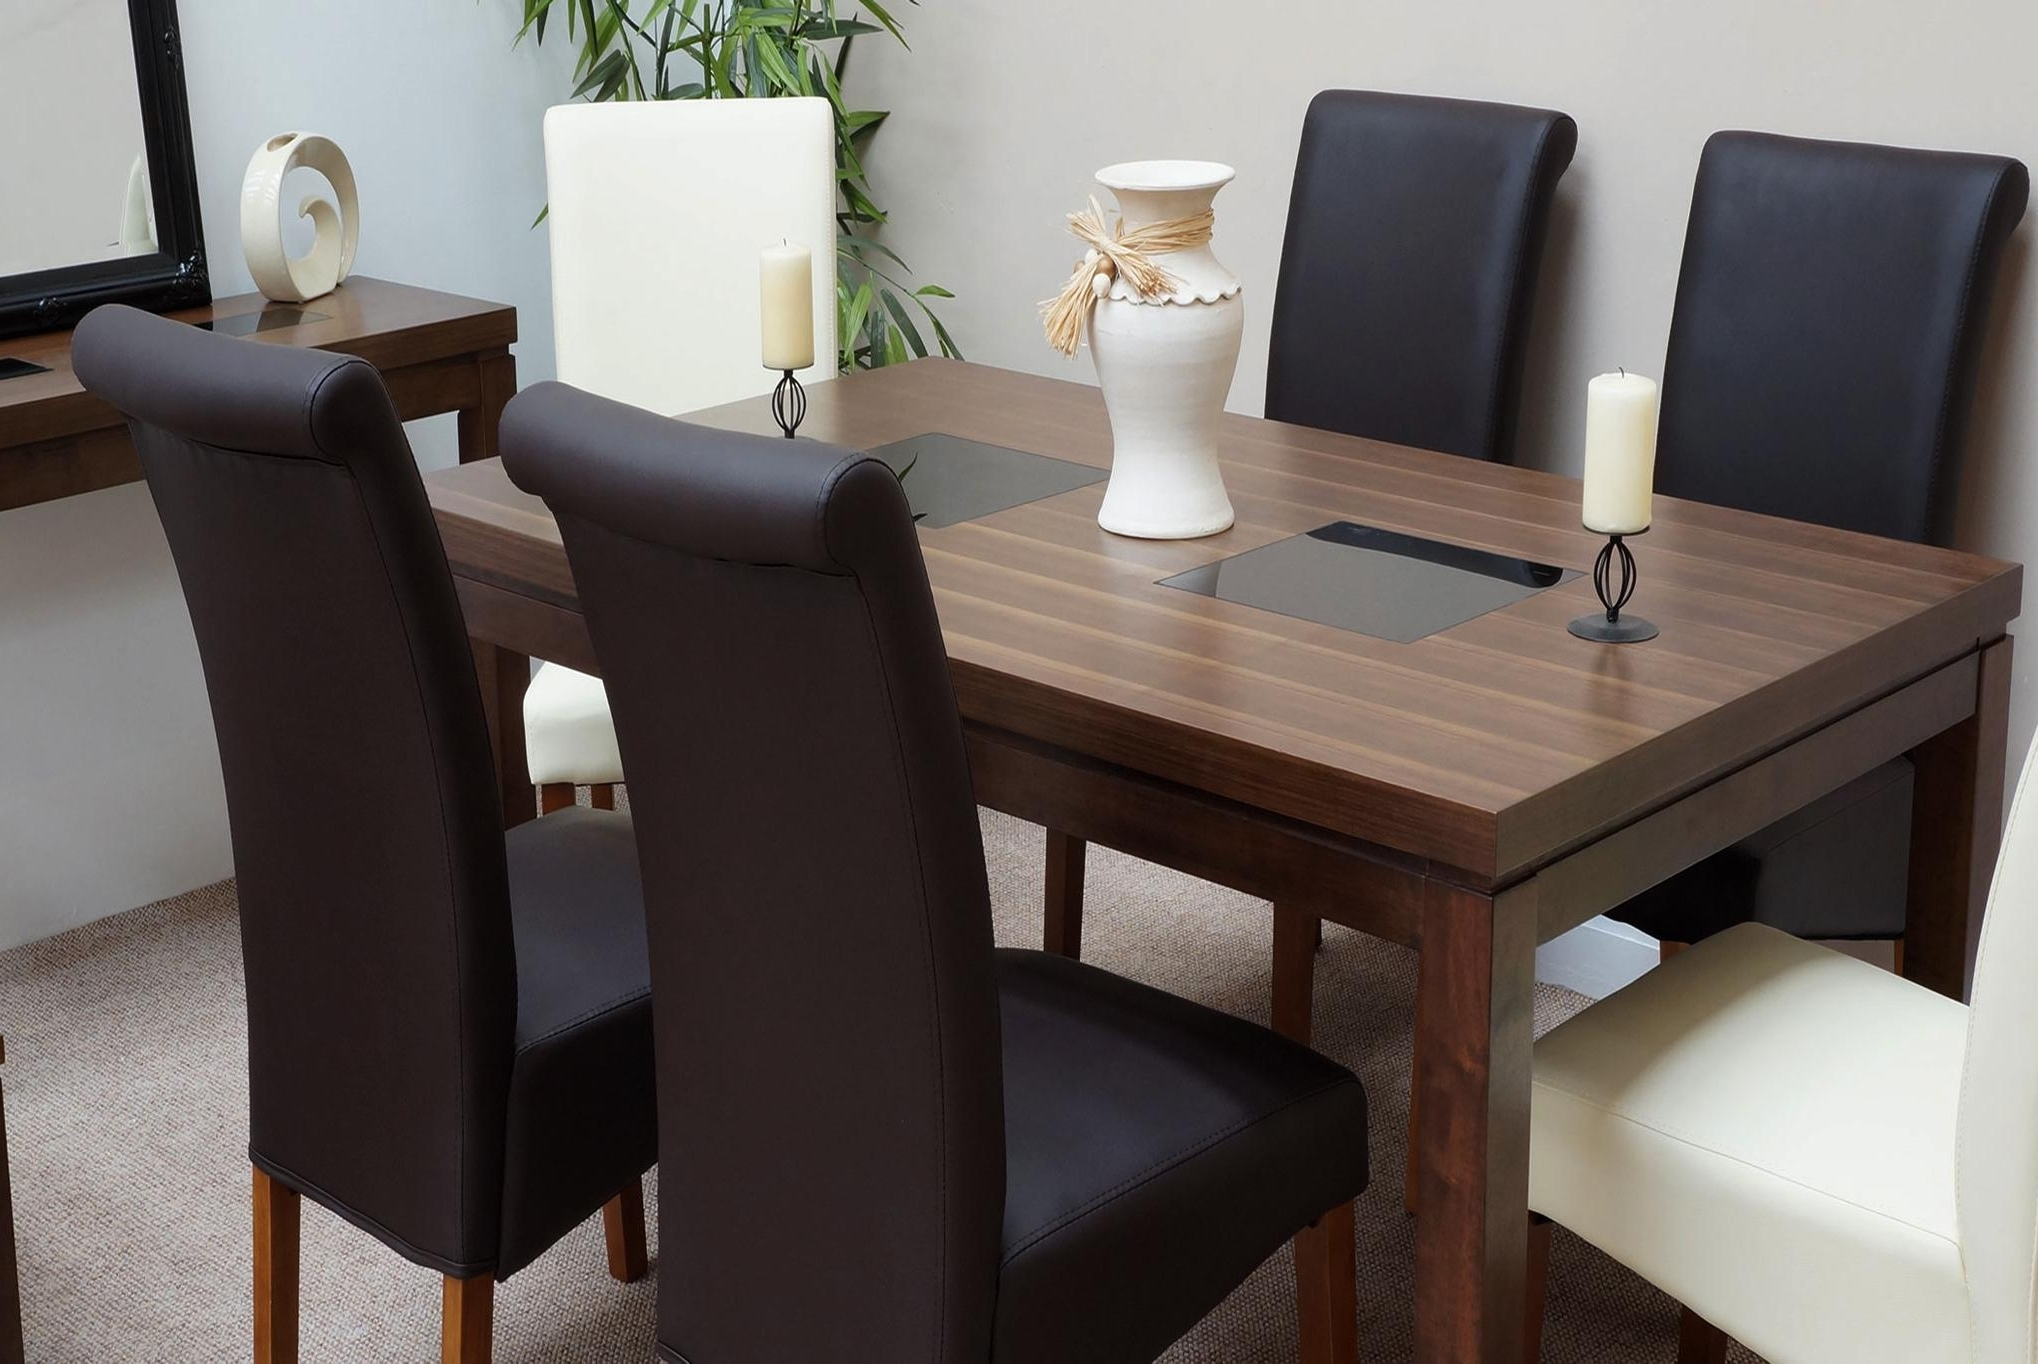 Fashionable Walnut Dining Tables And Chairs With Sydney Walnut Dining Set + 4 Chairs – Dublin, Ireland Furniture (View 3 of 25)